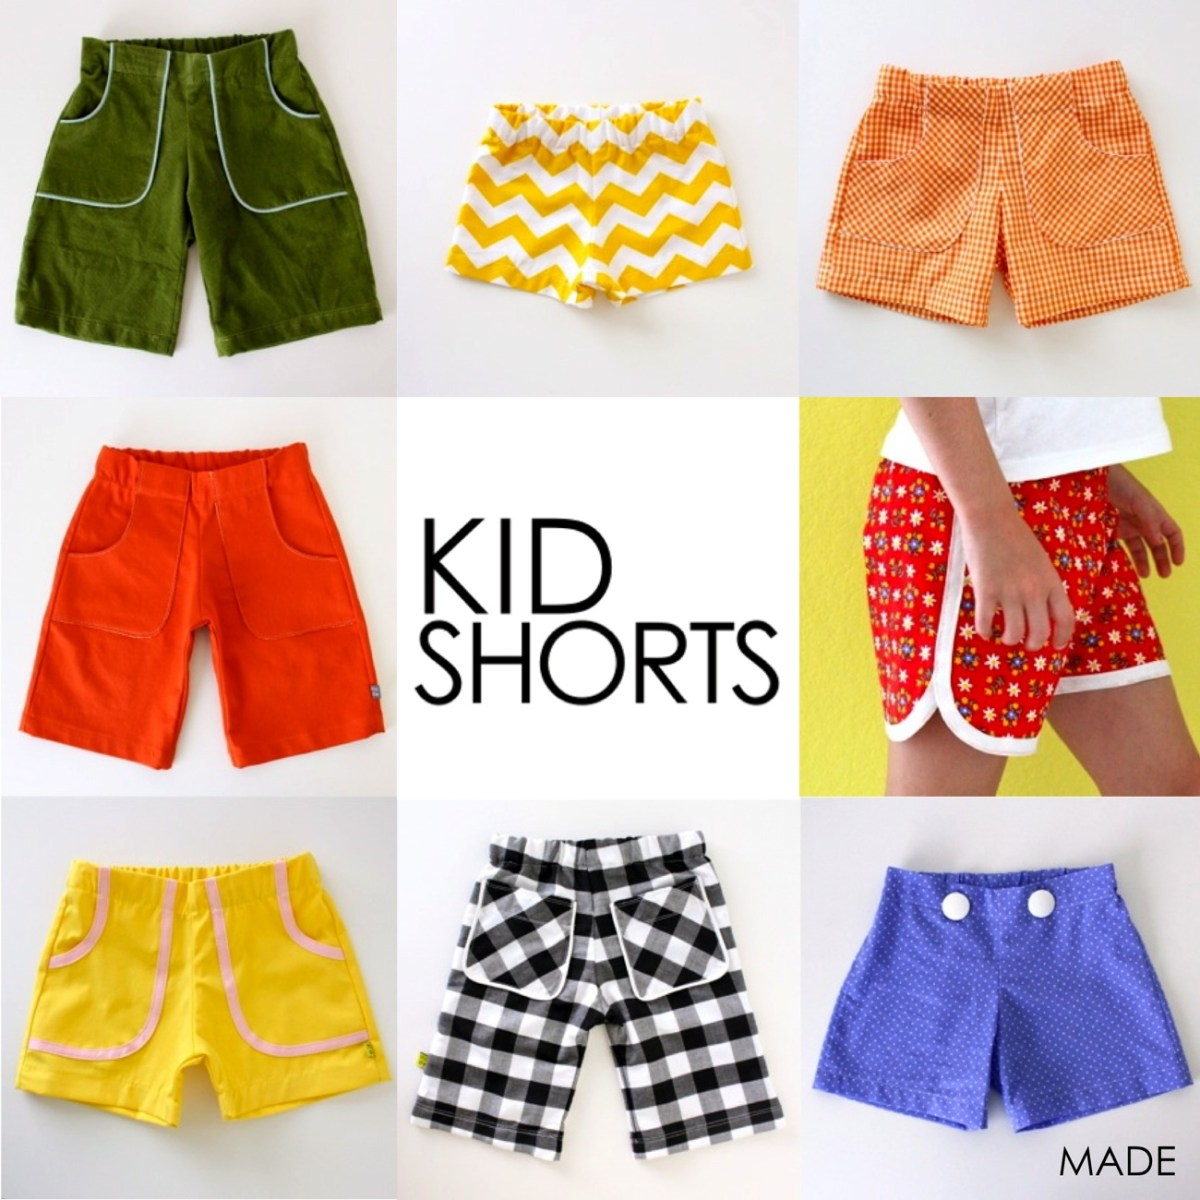 Kids Patterns Sewing Free Pattern Kid Shortsages 12 Months To 10 Years Made Everyday